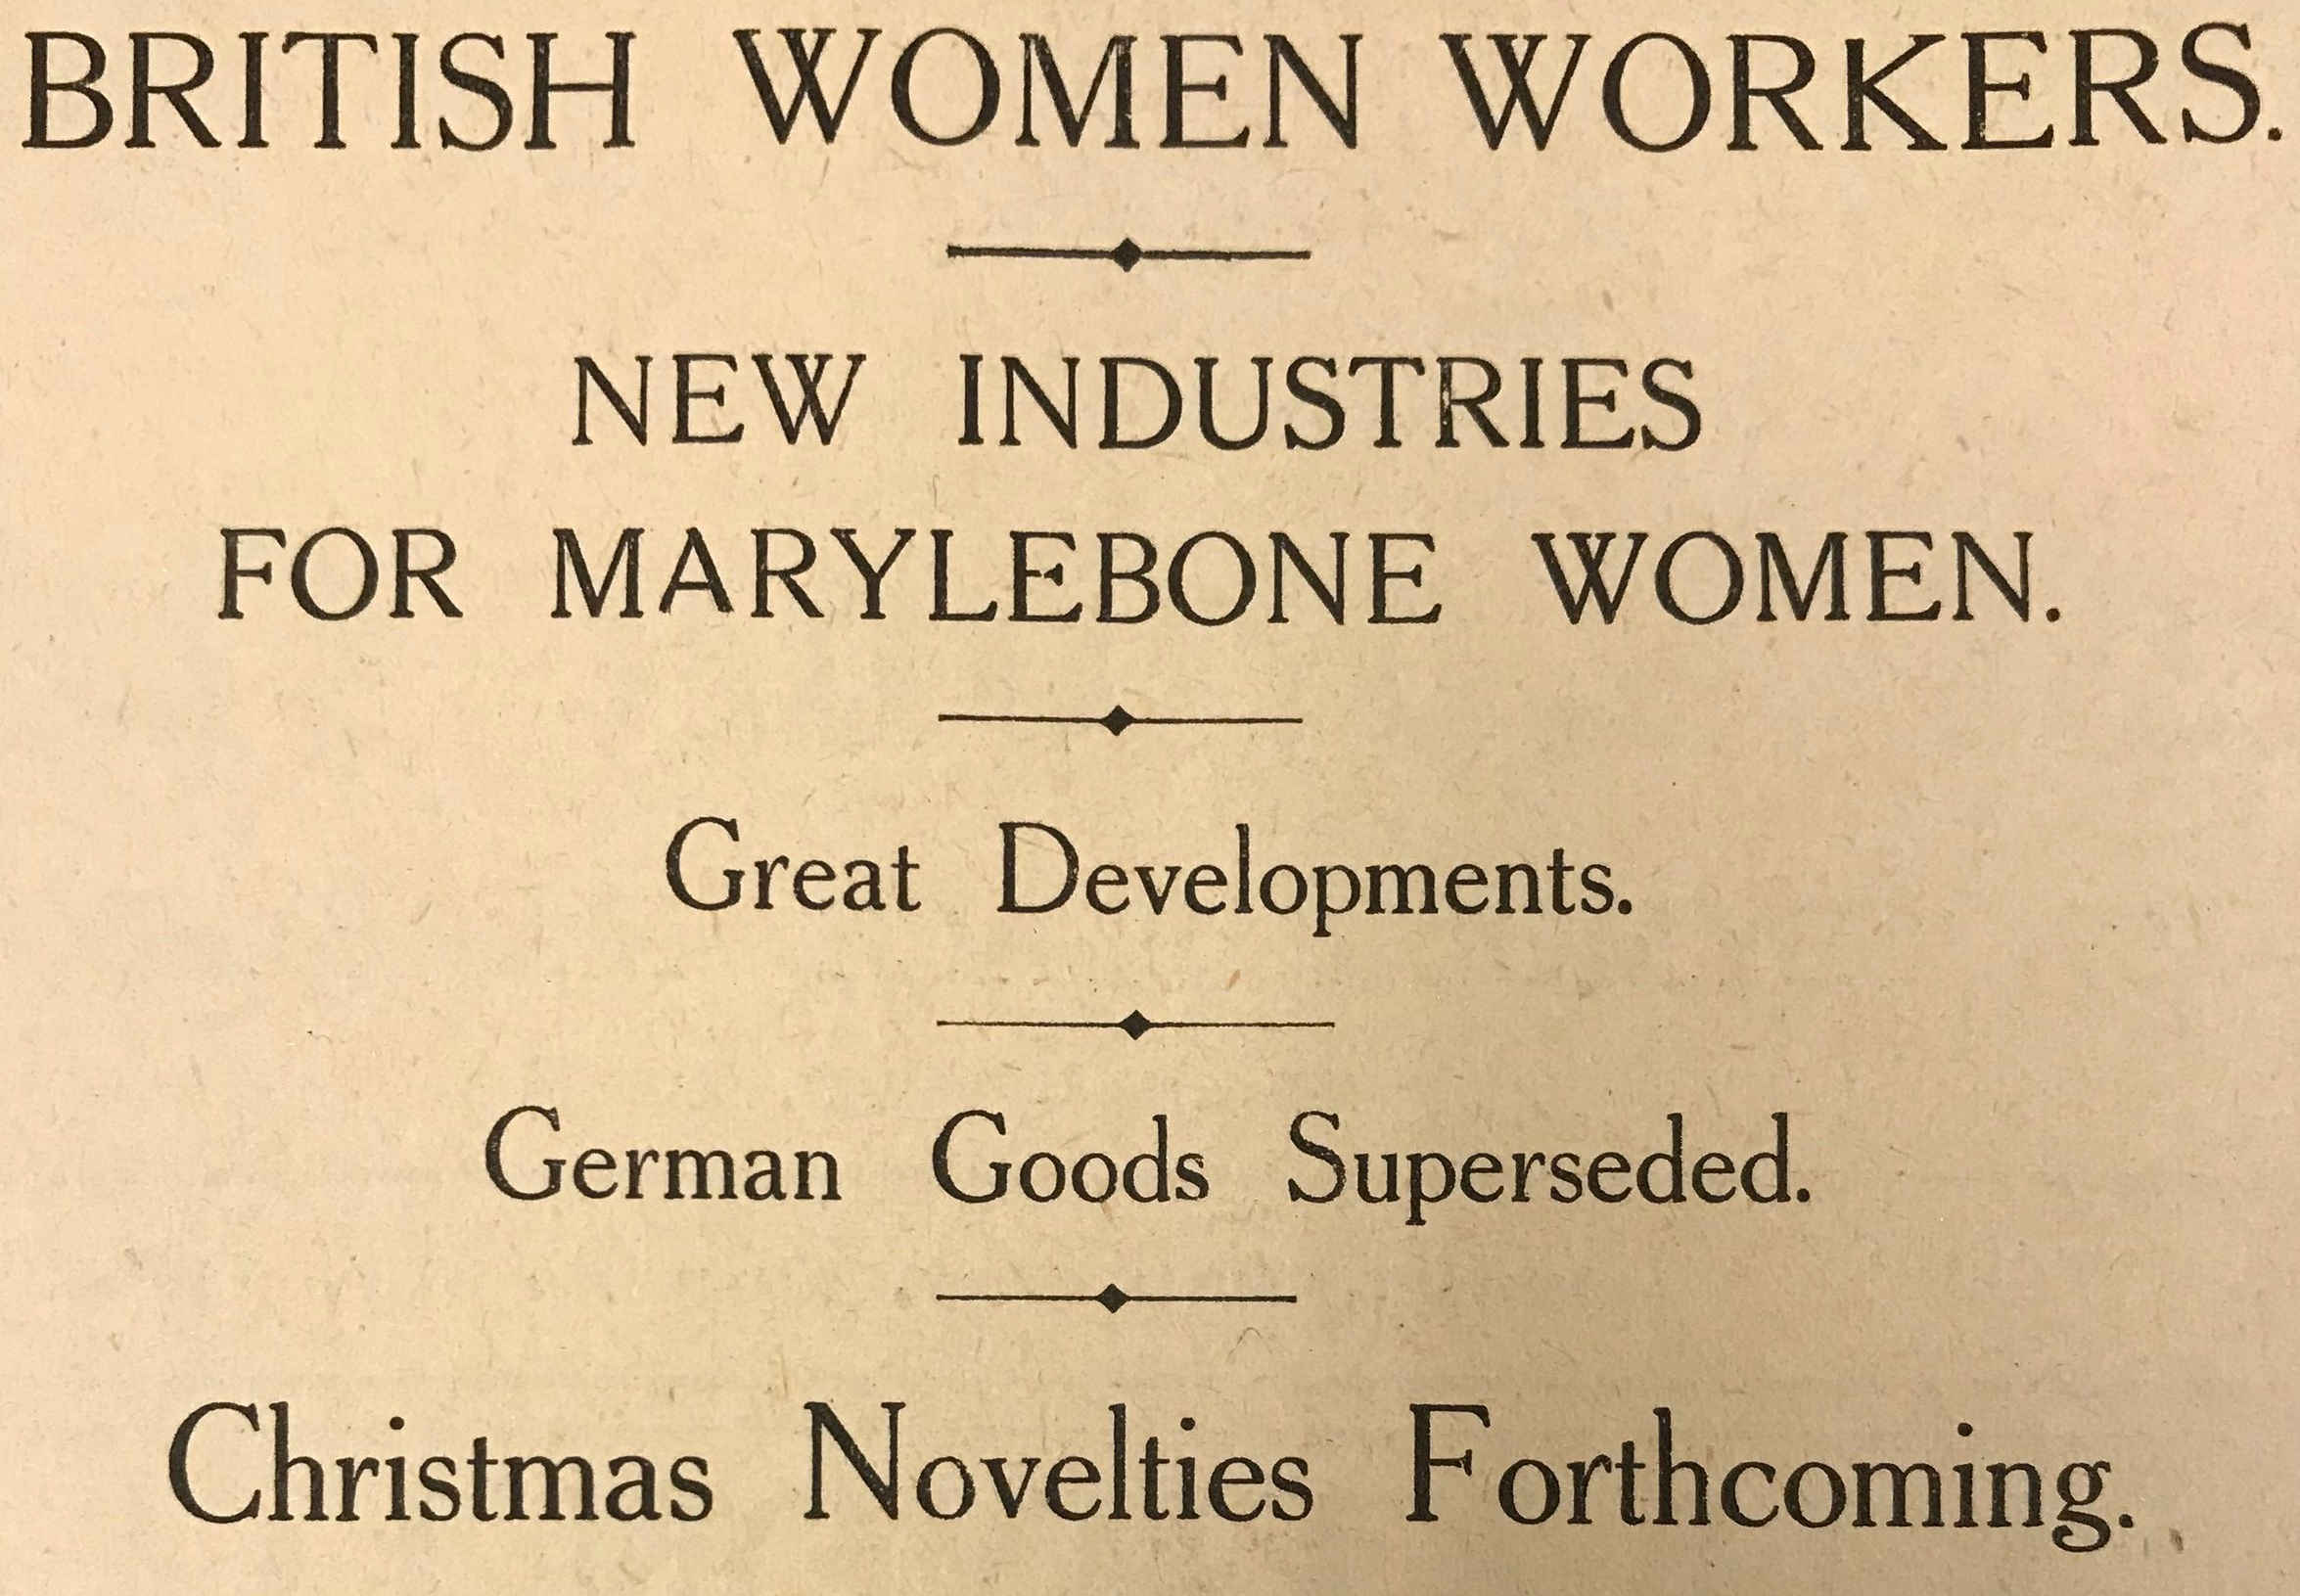 Advertisement from the Marylebone Record.